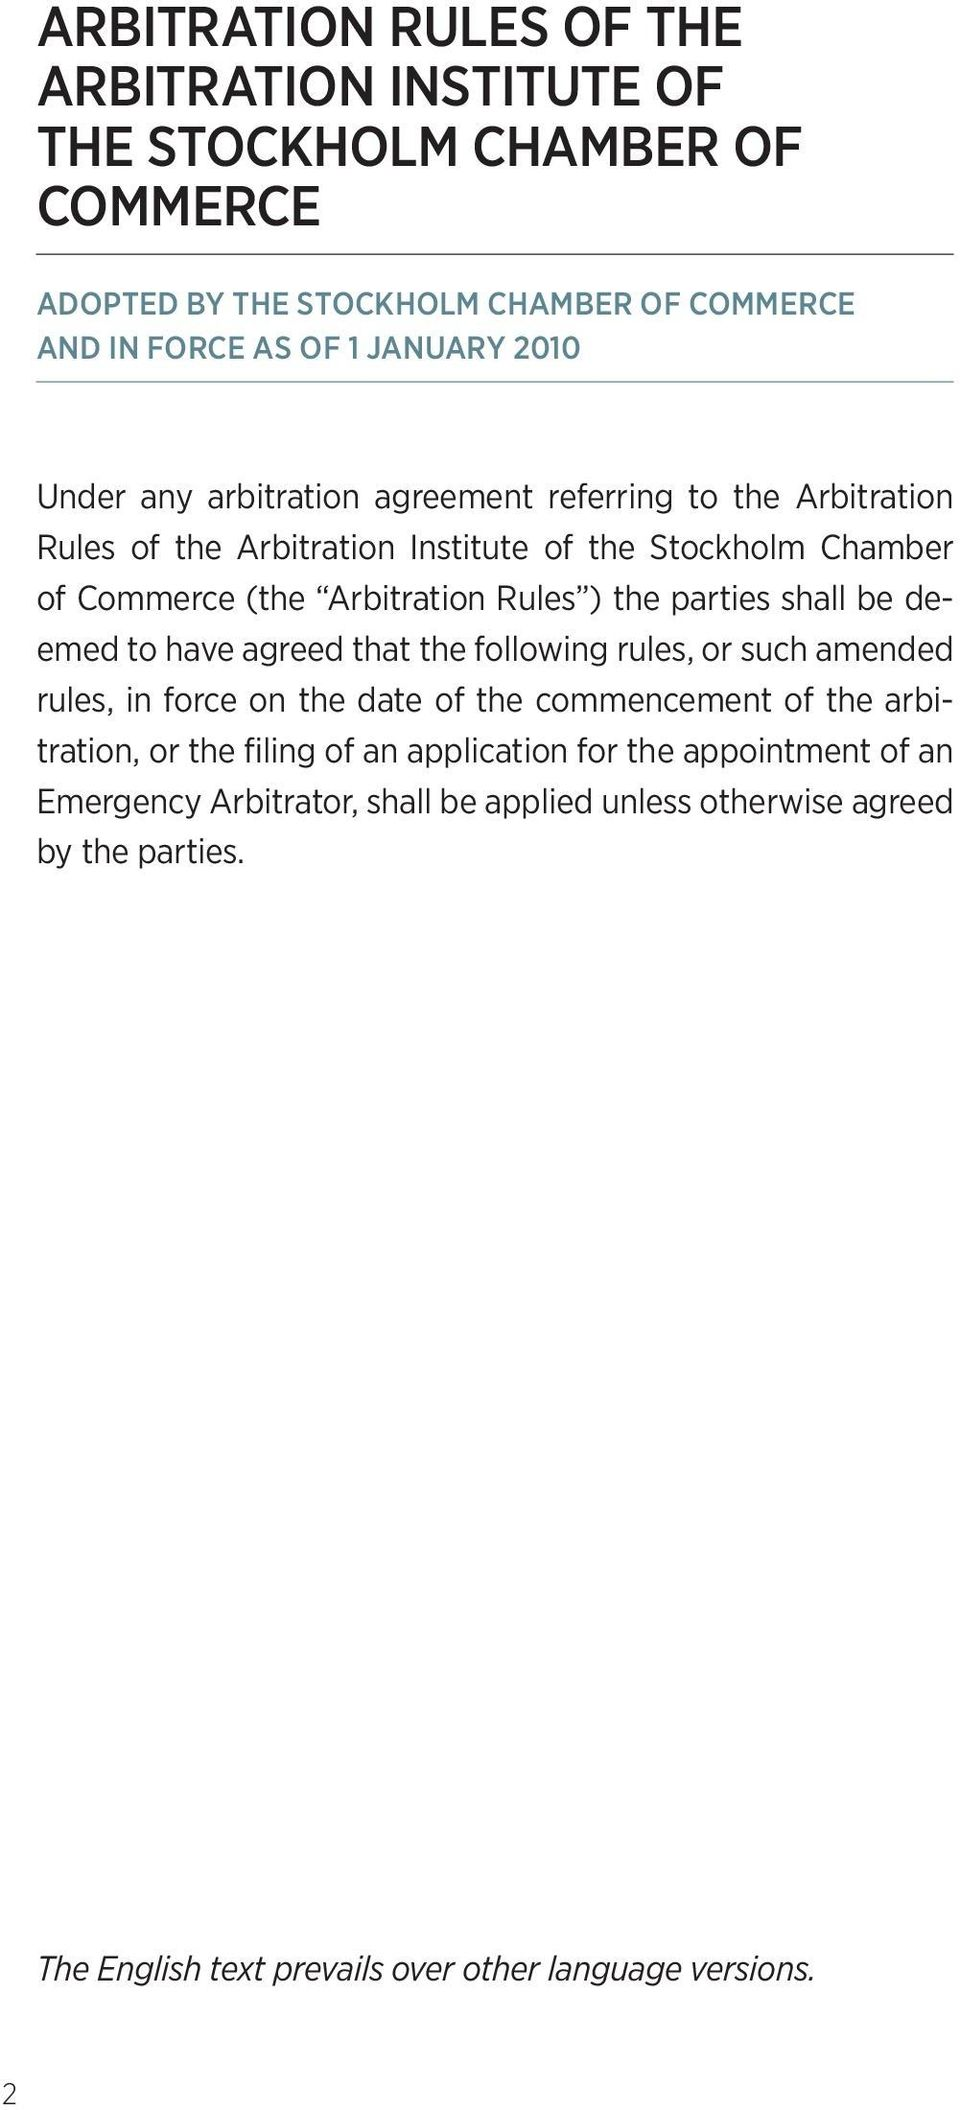 parties shall be deemed to have agreed that the following rules, or such amended rules, in force on the date of the commencement of the arbitration, or the filing of